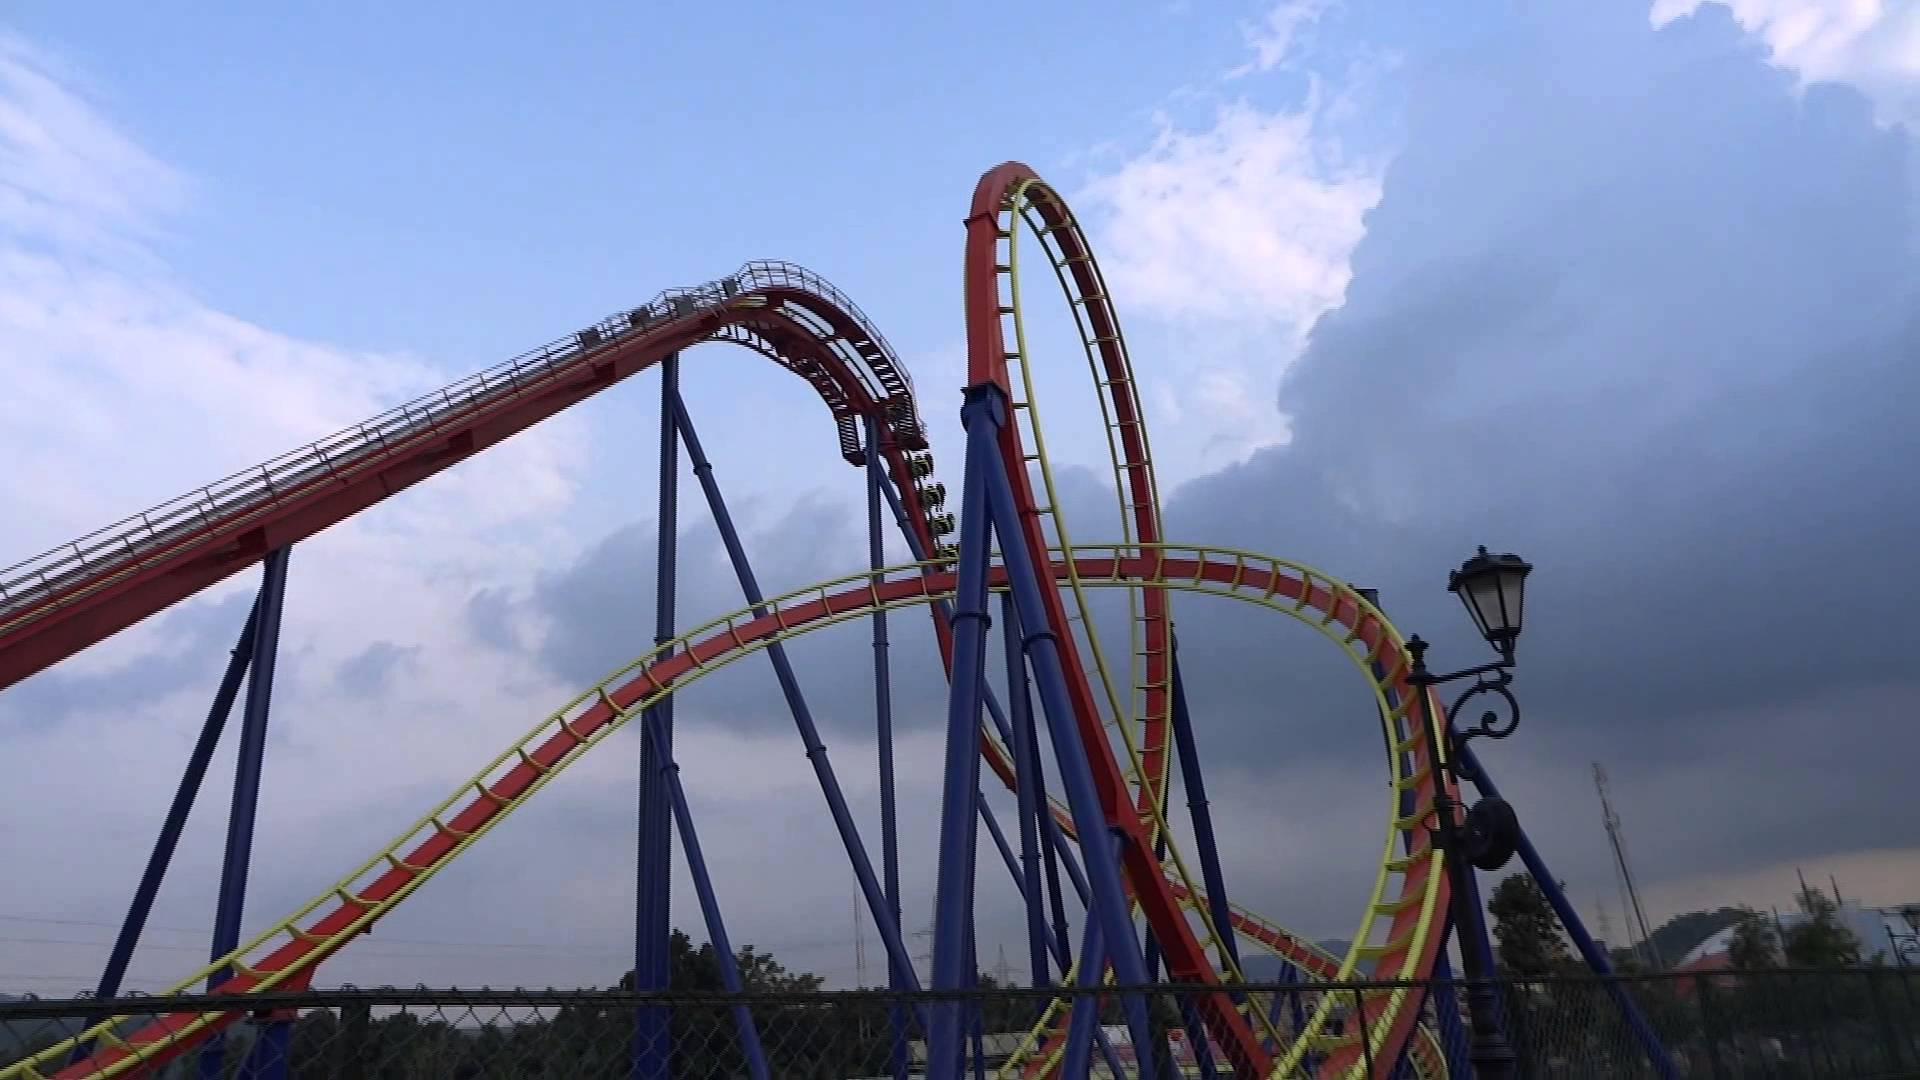 Thrill seekers 5 of indias best amusement park rides that you must try